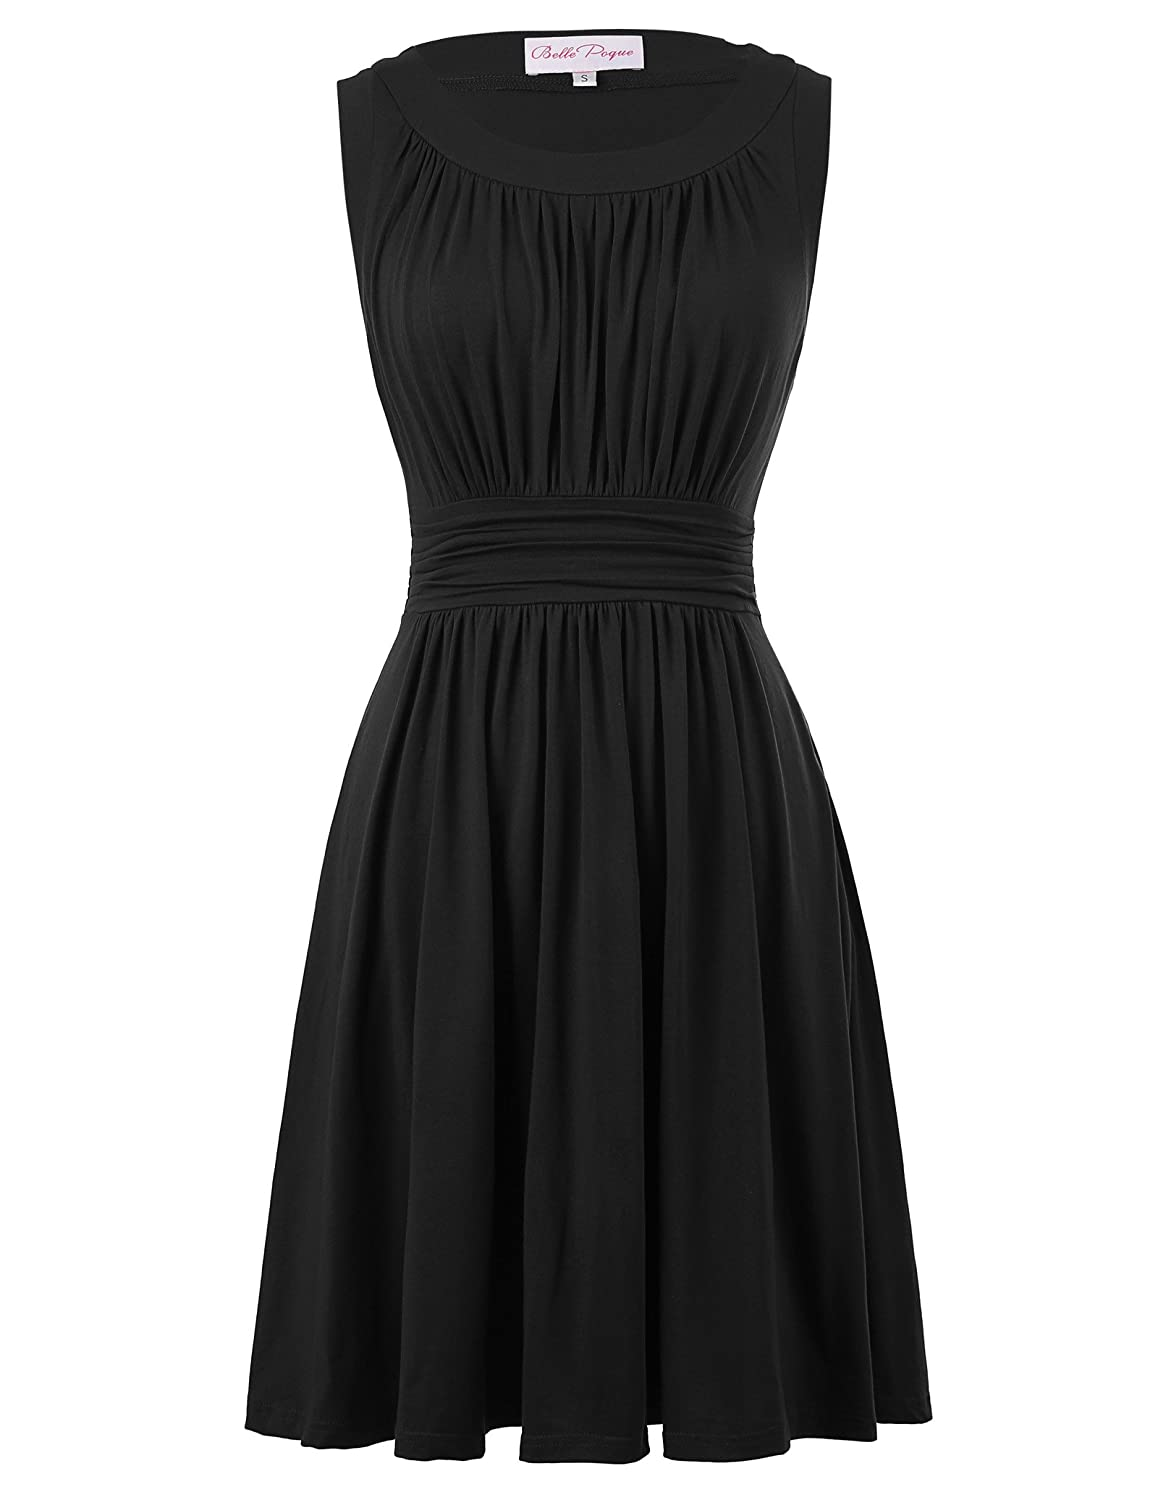 aa075297b03b19 Belle Poque A-Line Women's 1950s Vintage Dress Sleeveless at Amazon Women's  Clothing store: